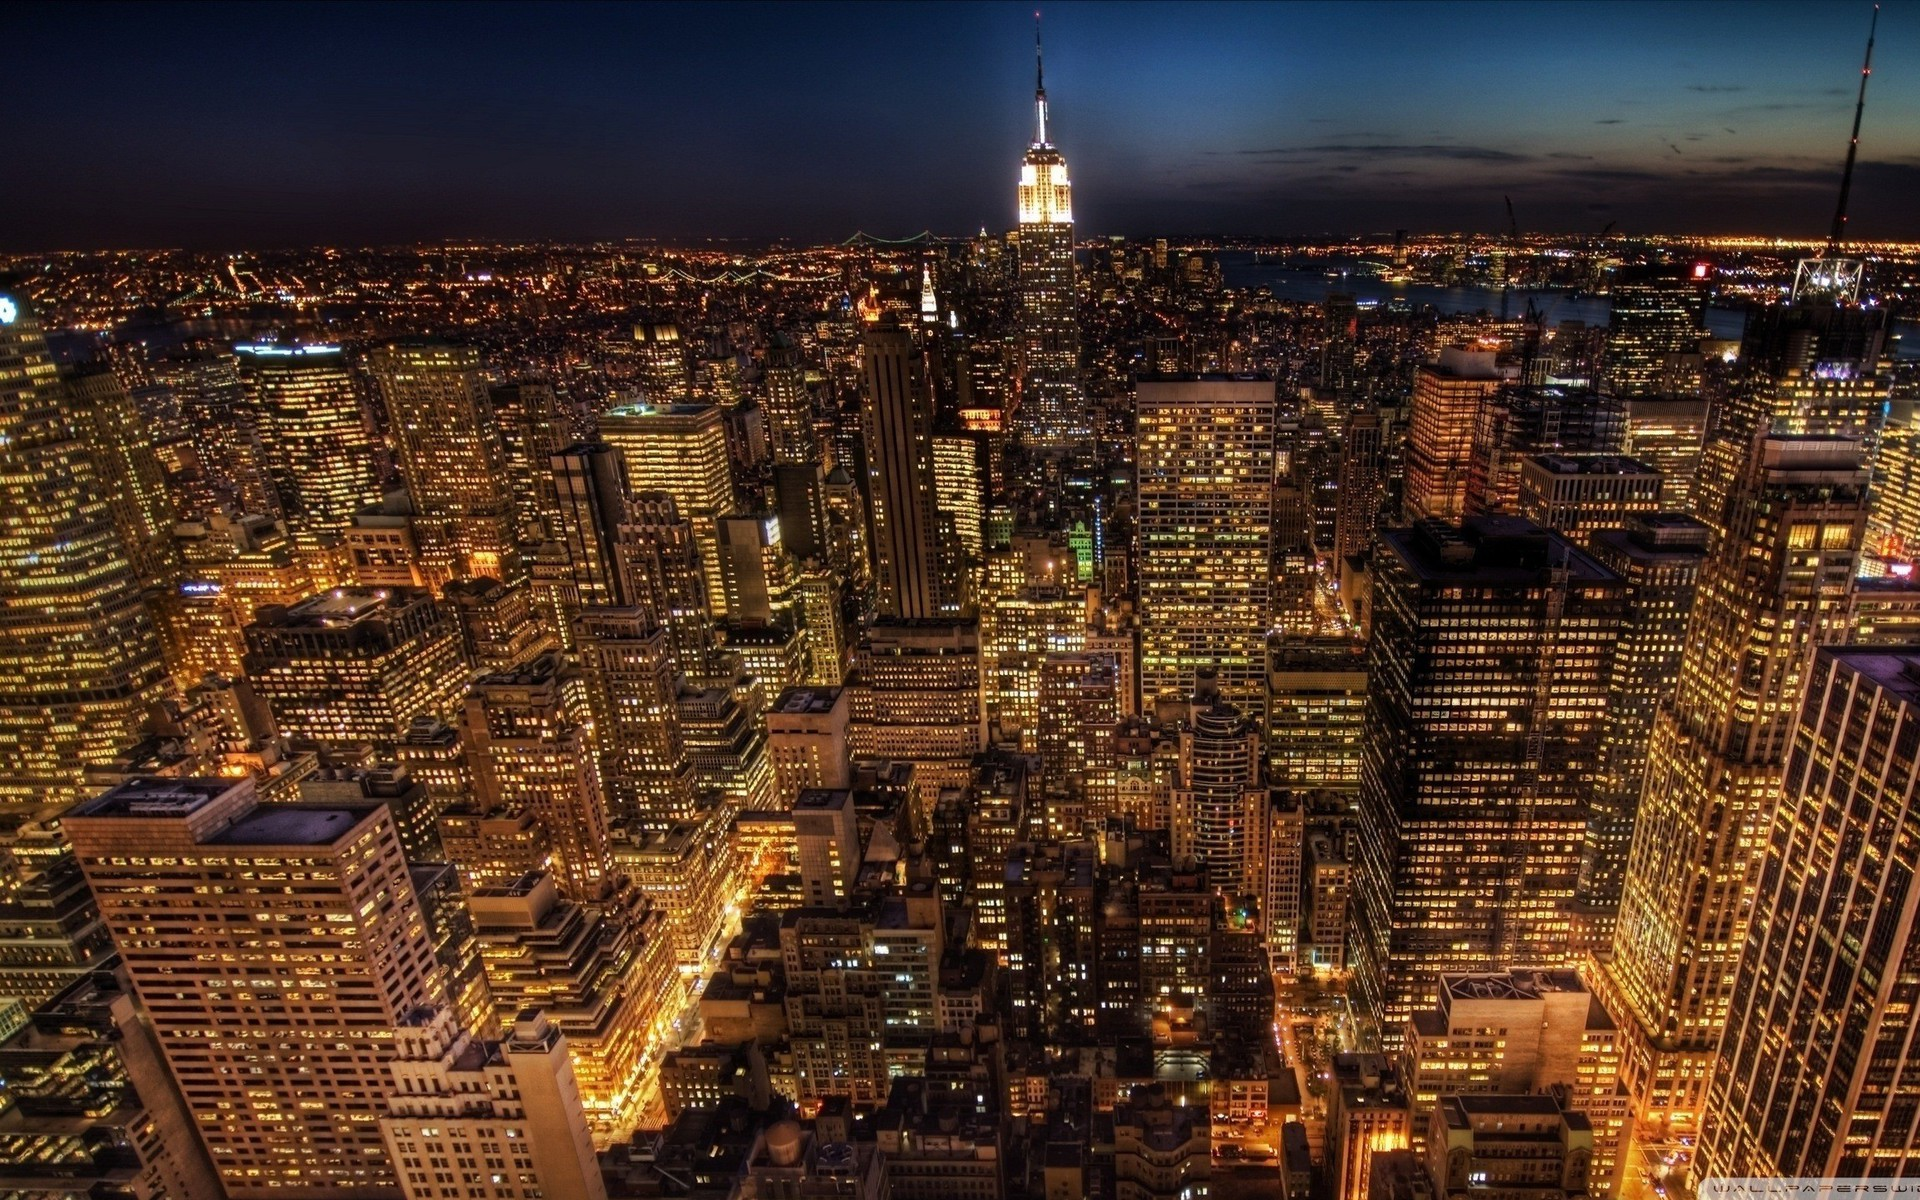 City Lights Aerial View Wallpaper